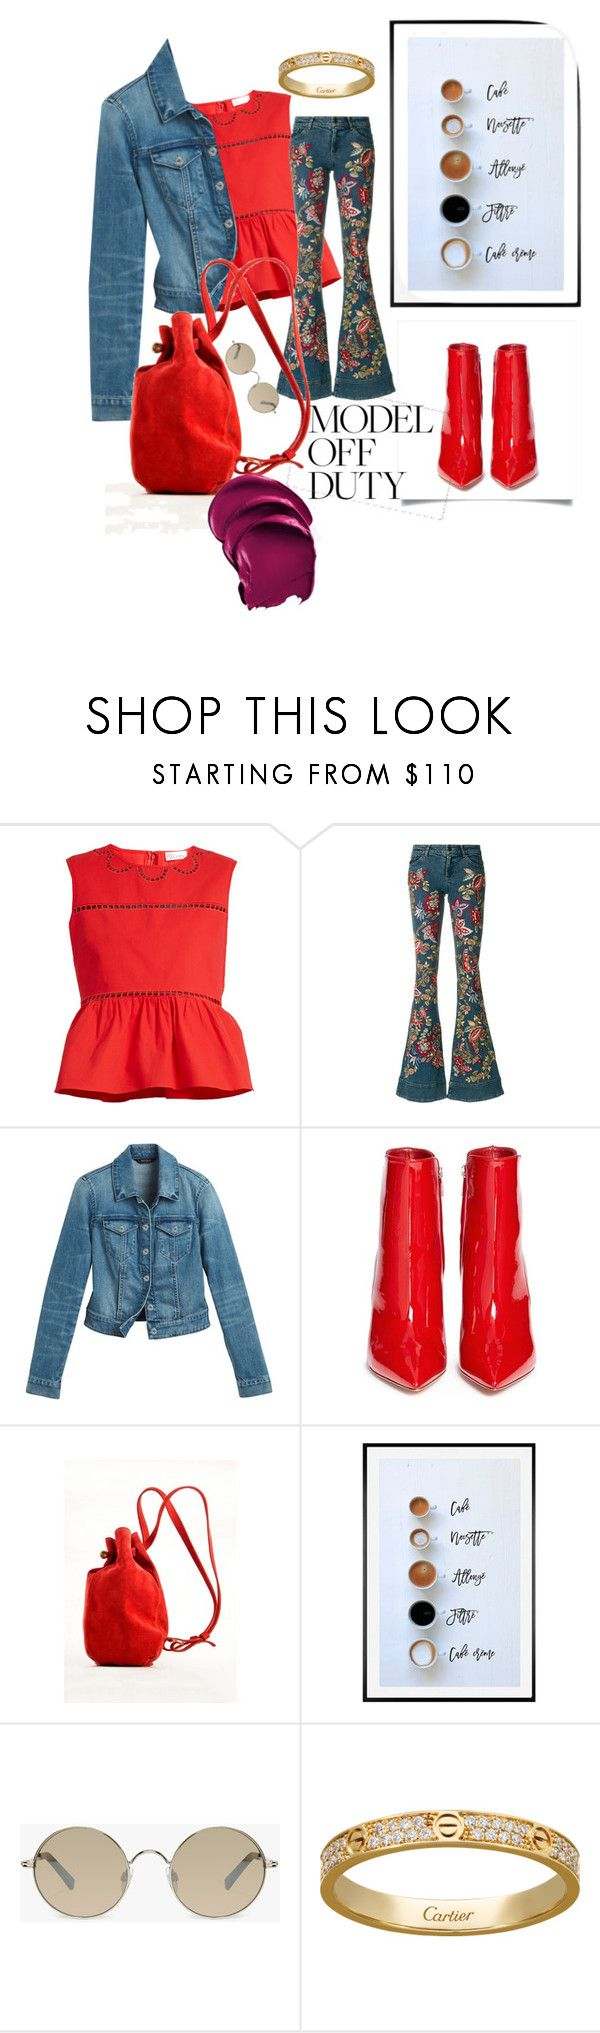 """""""Thankful"""" by dperfectwifey ❤ liked on Polyvore featuring RED Valentino, Alice + Olivia, White House Black Market, Gianvito Rossi, Meraki, Pottery Barn and Tura"""